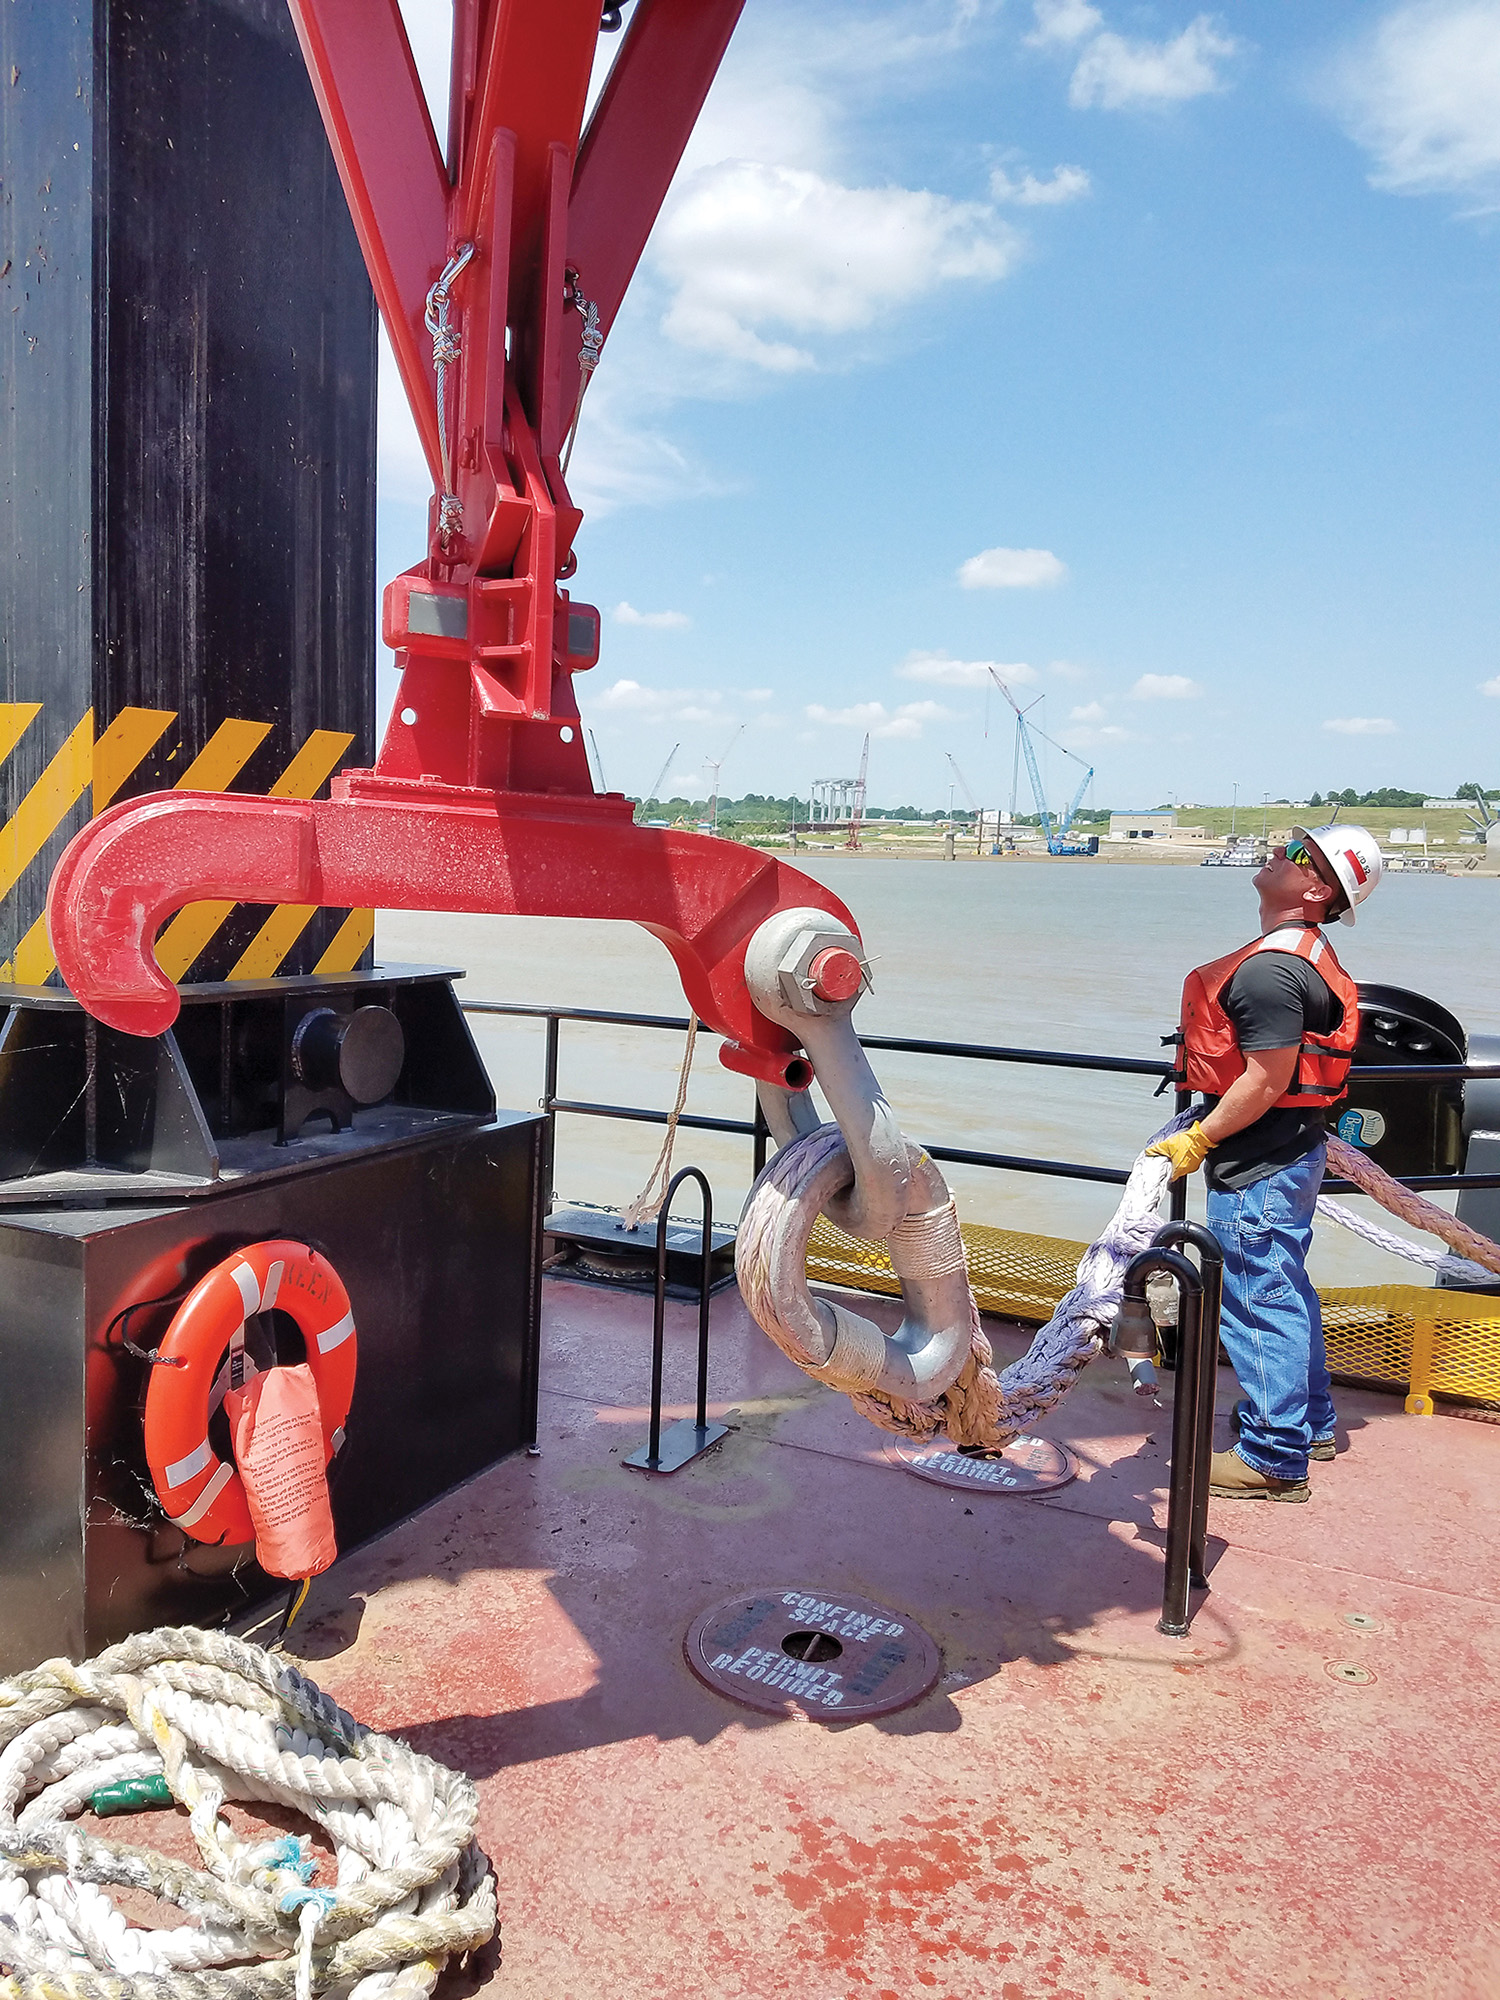 Corps employees continue training with and testing the new wicket lifter Keen at Olmsted Locks and Dam. The equipment will allow the Corps to lift the wickets at the dam and hold pool for safer navigation.